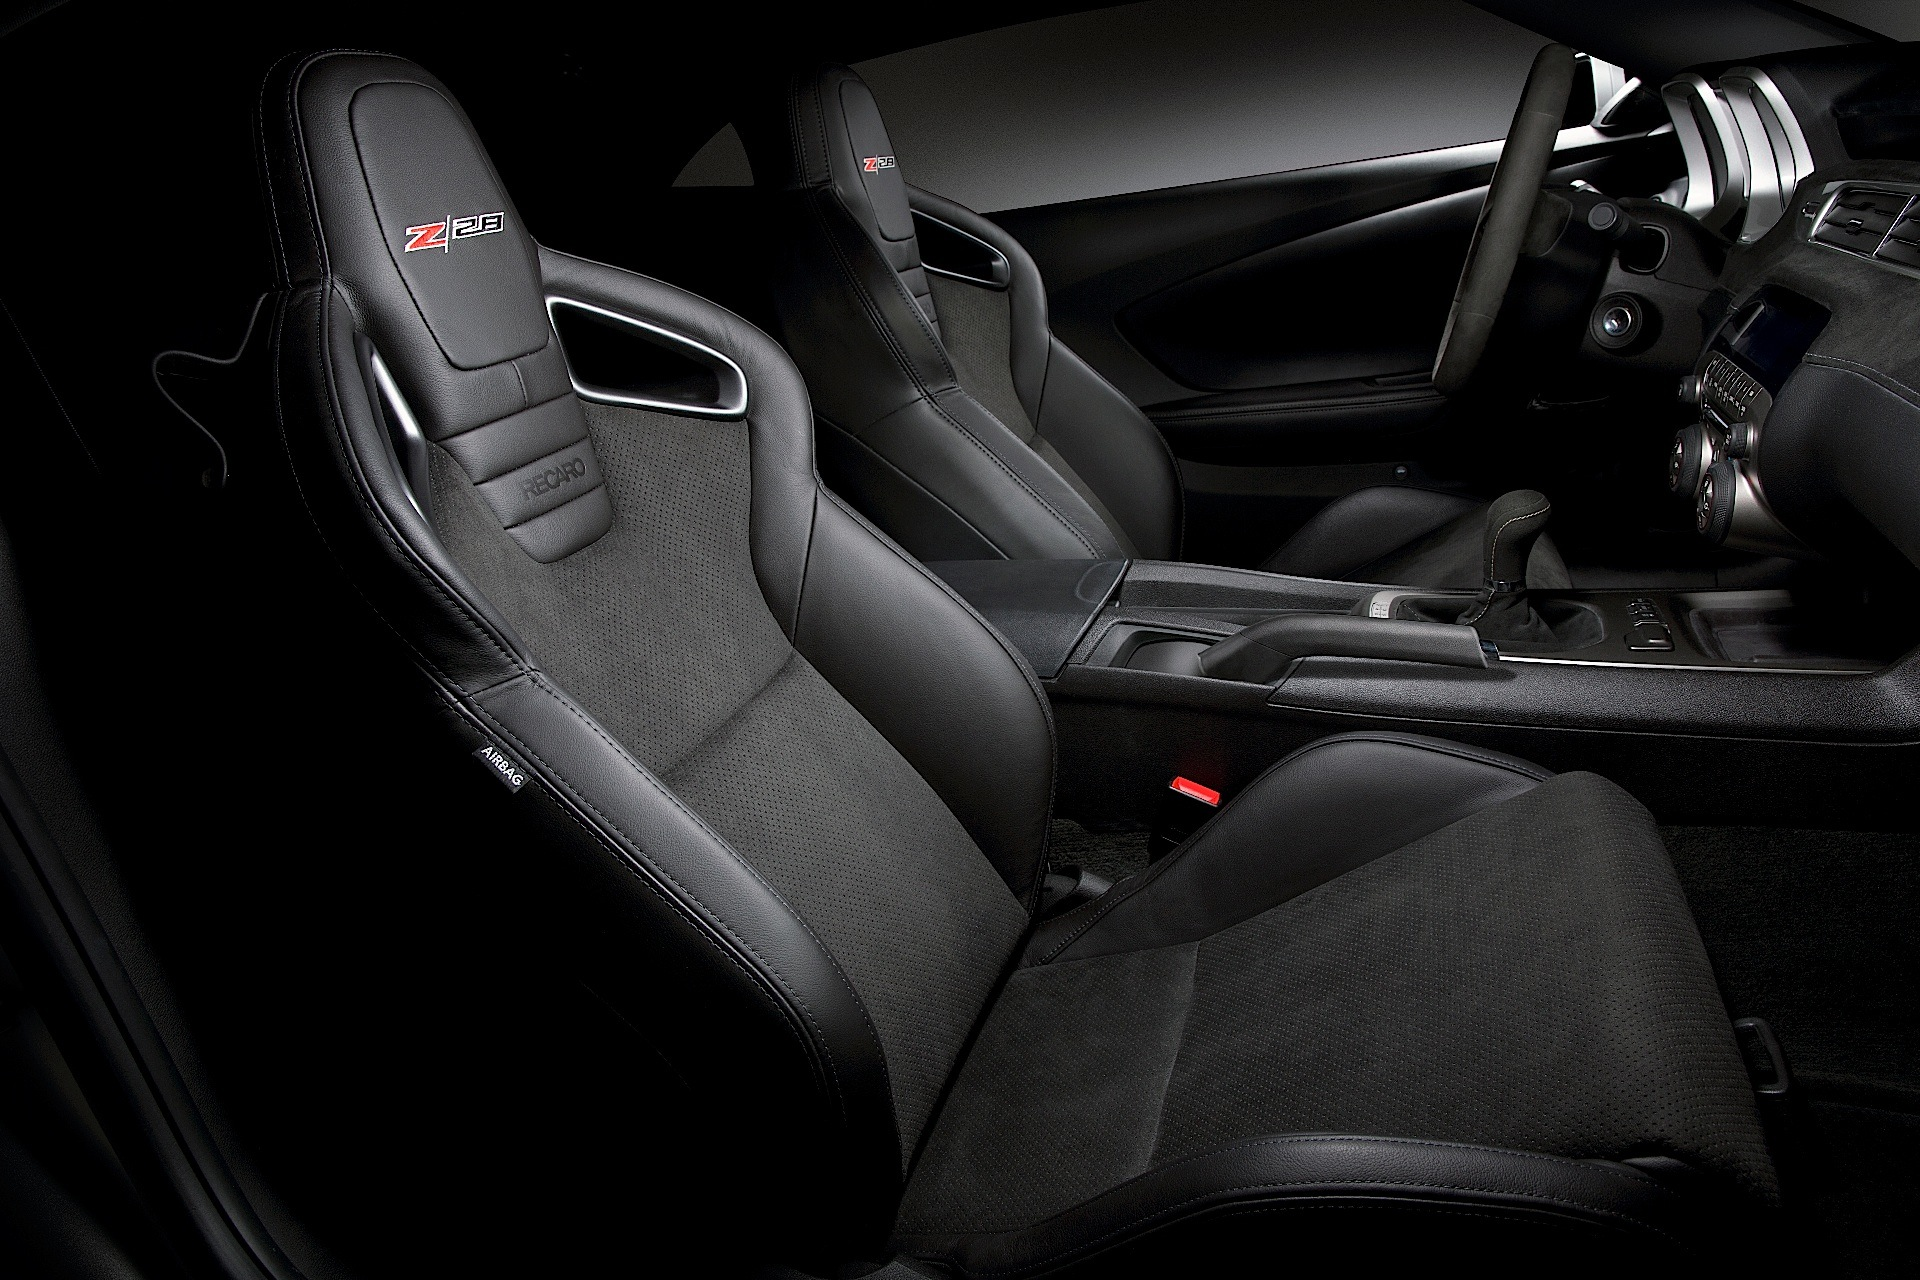 chevrolet camaro z28 specs 2013 2014 2015 2016 2017 autoevolution. Black Bedroom Furniture Sets. Home Design Ideas